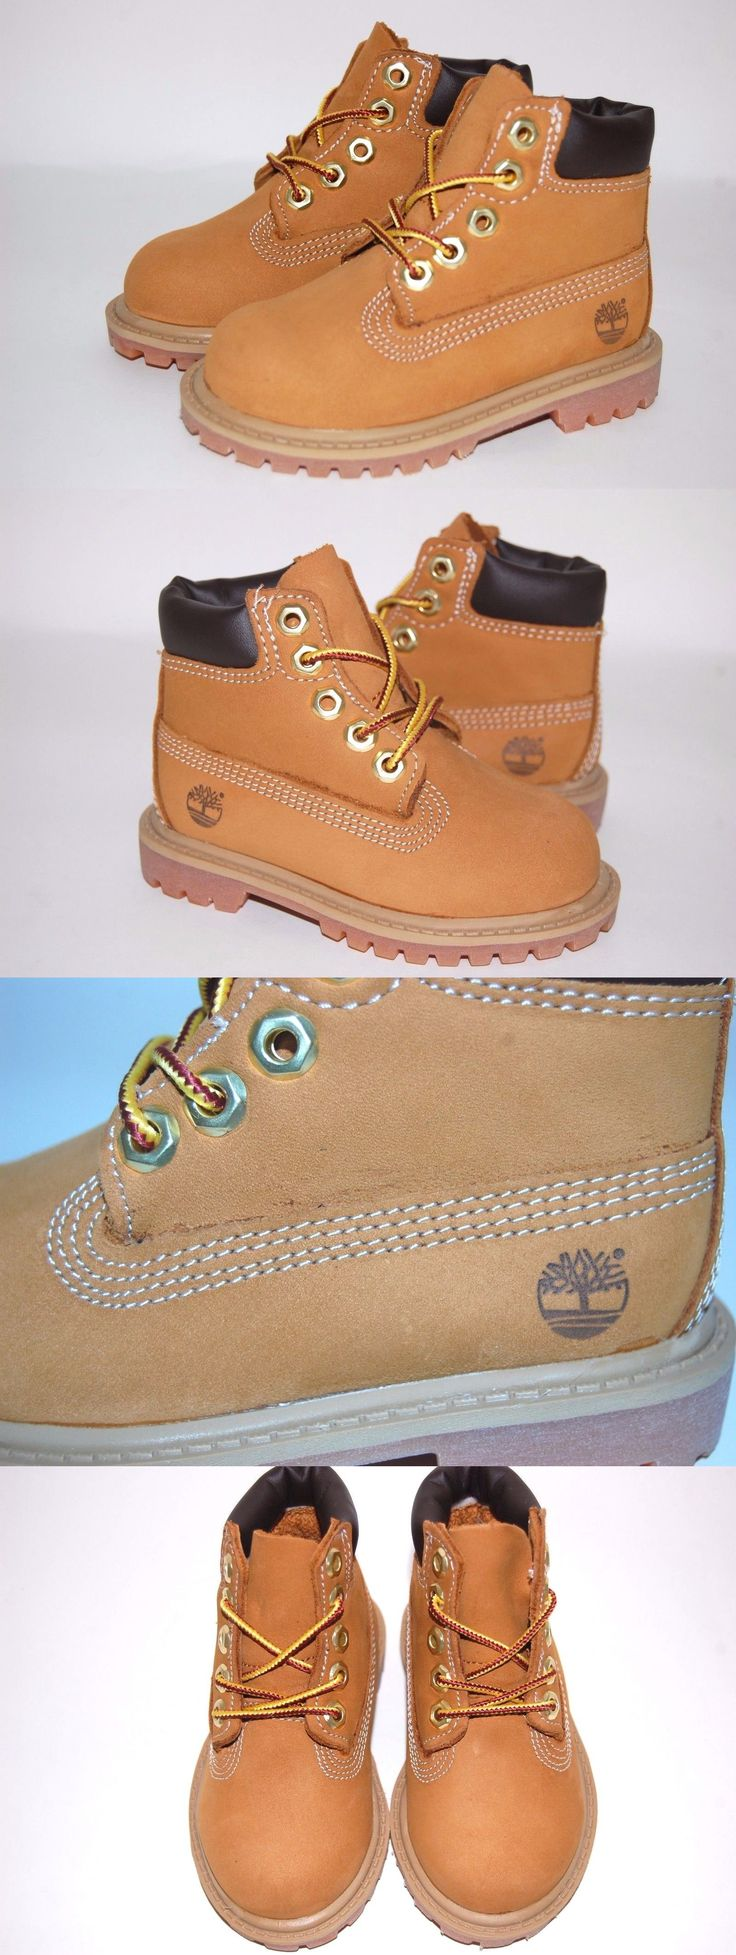 Baby Shoes 147285: Timberland Toddler 6 Inch Premium Wheat Tb012809 Nubuck Boots Shoes -> BUY IT NOW ONLY: $59.95 on eBay!